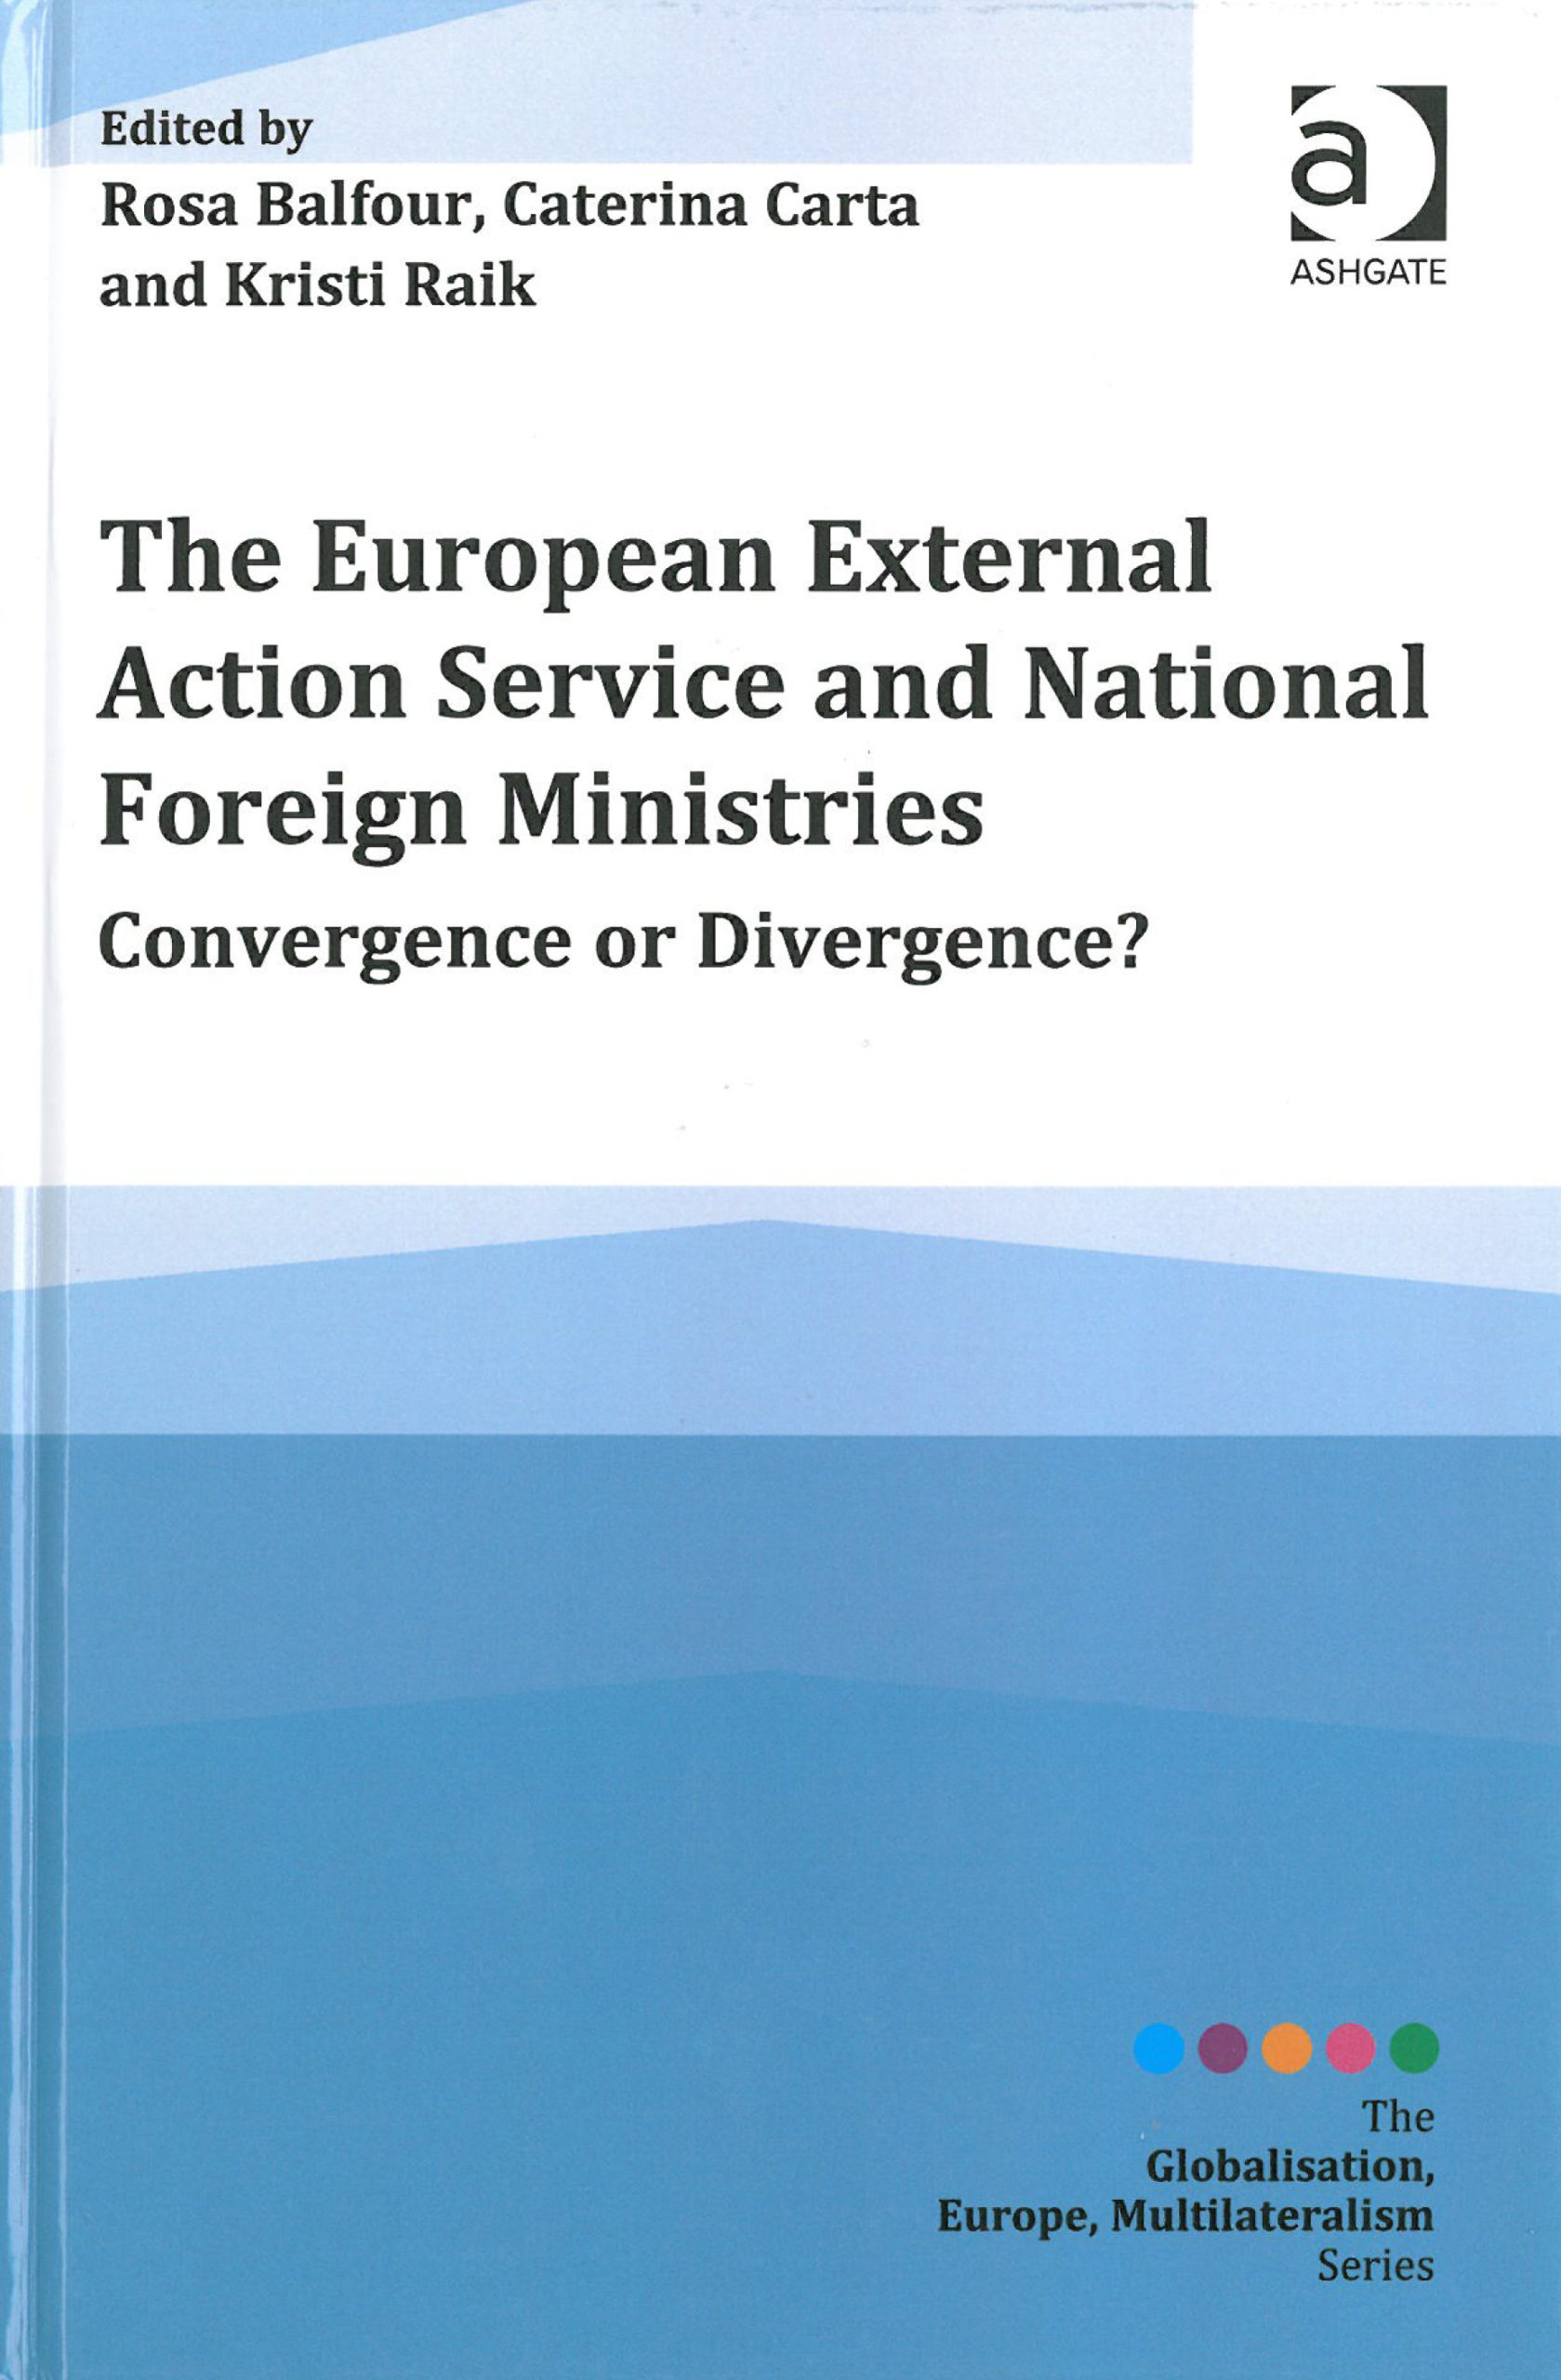 Rosa Balfour, Caterina Carta & Kristi Raik (toim.): The European External Action Service and National Foreign Ministries. Convergence or Divergence? Ashgate 2015, 258 s.